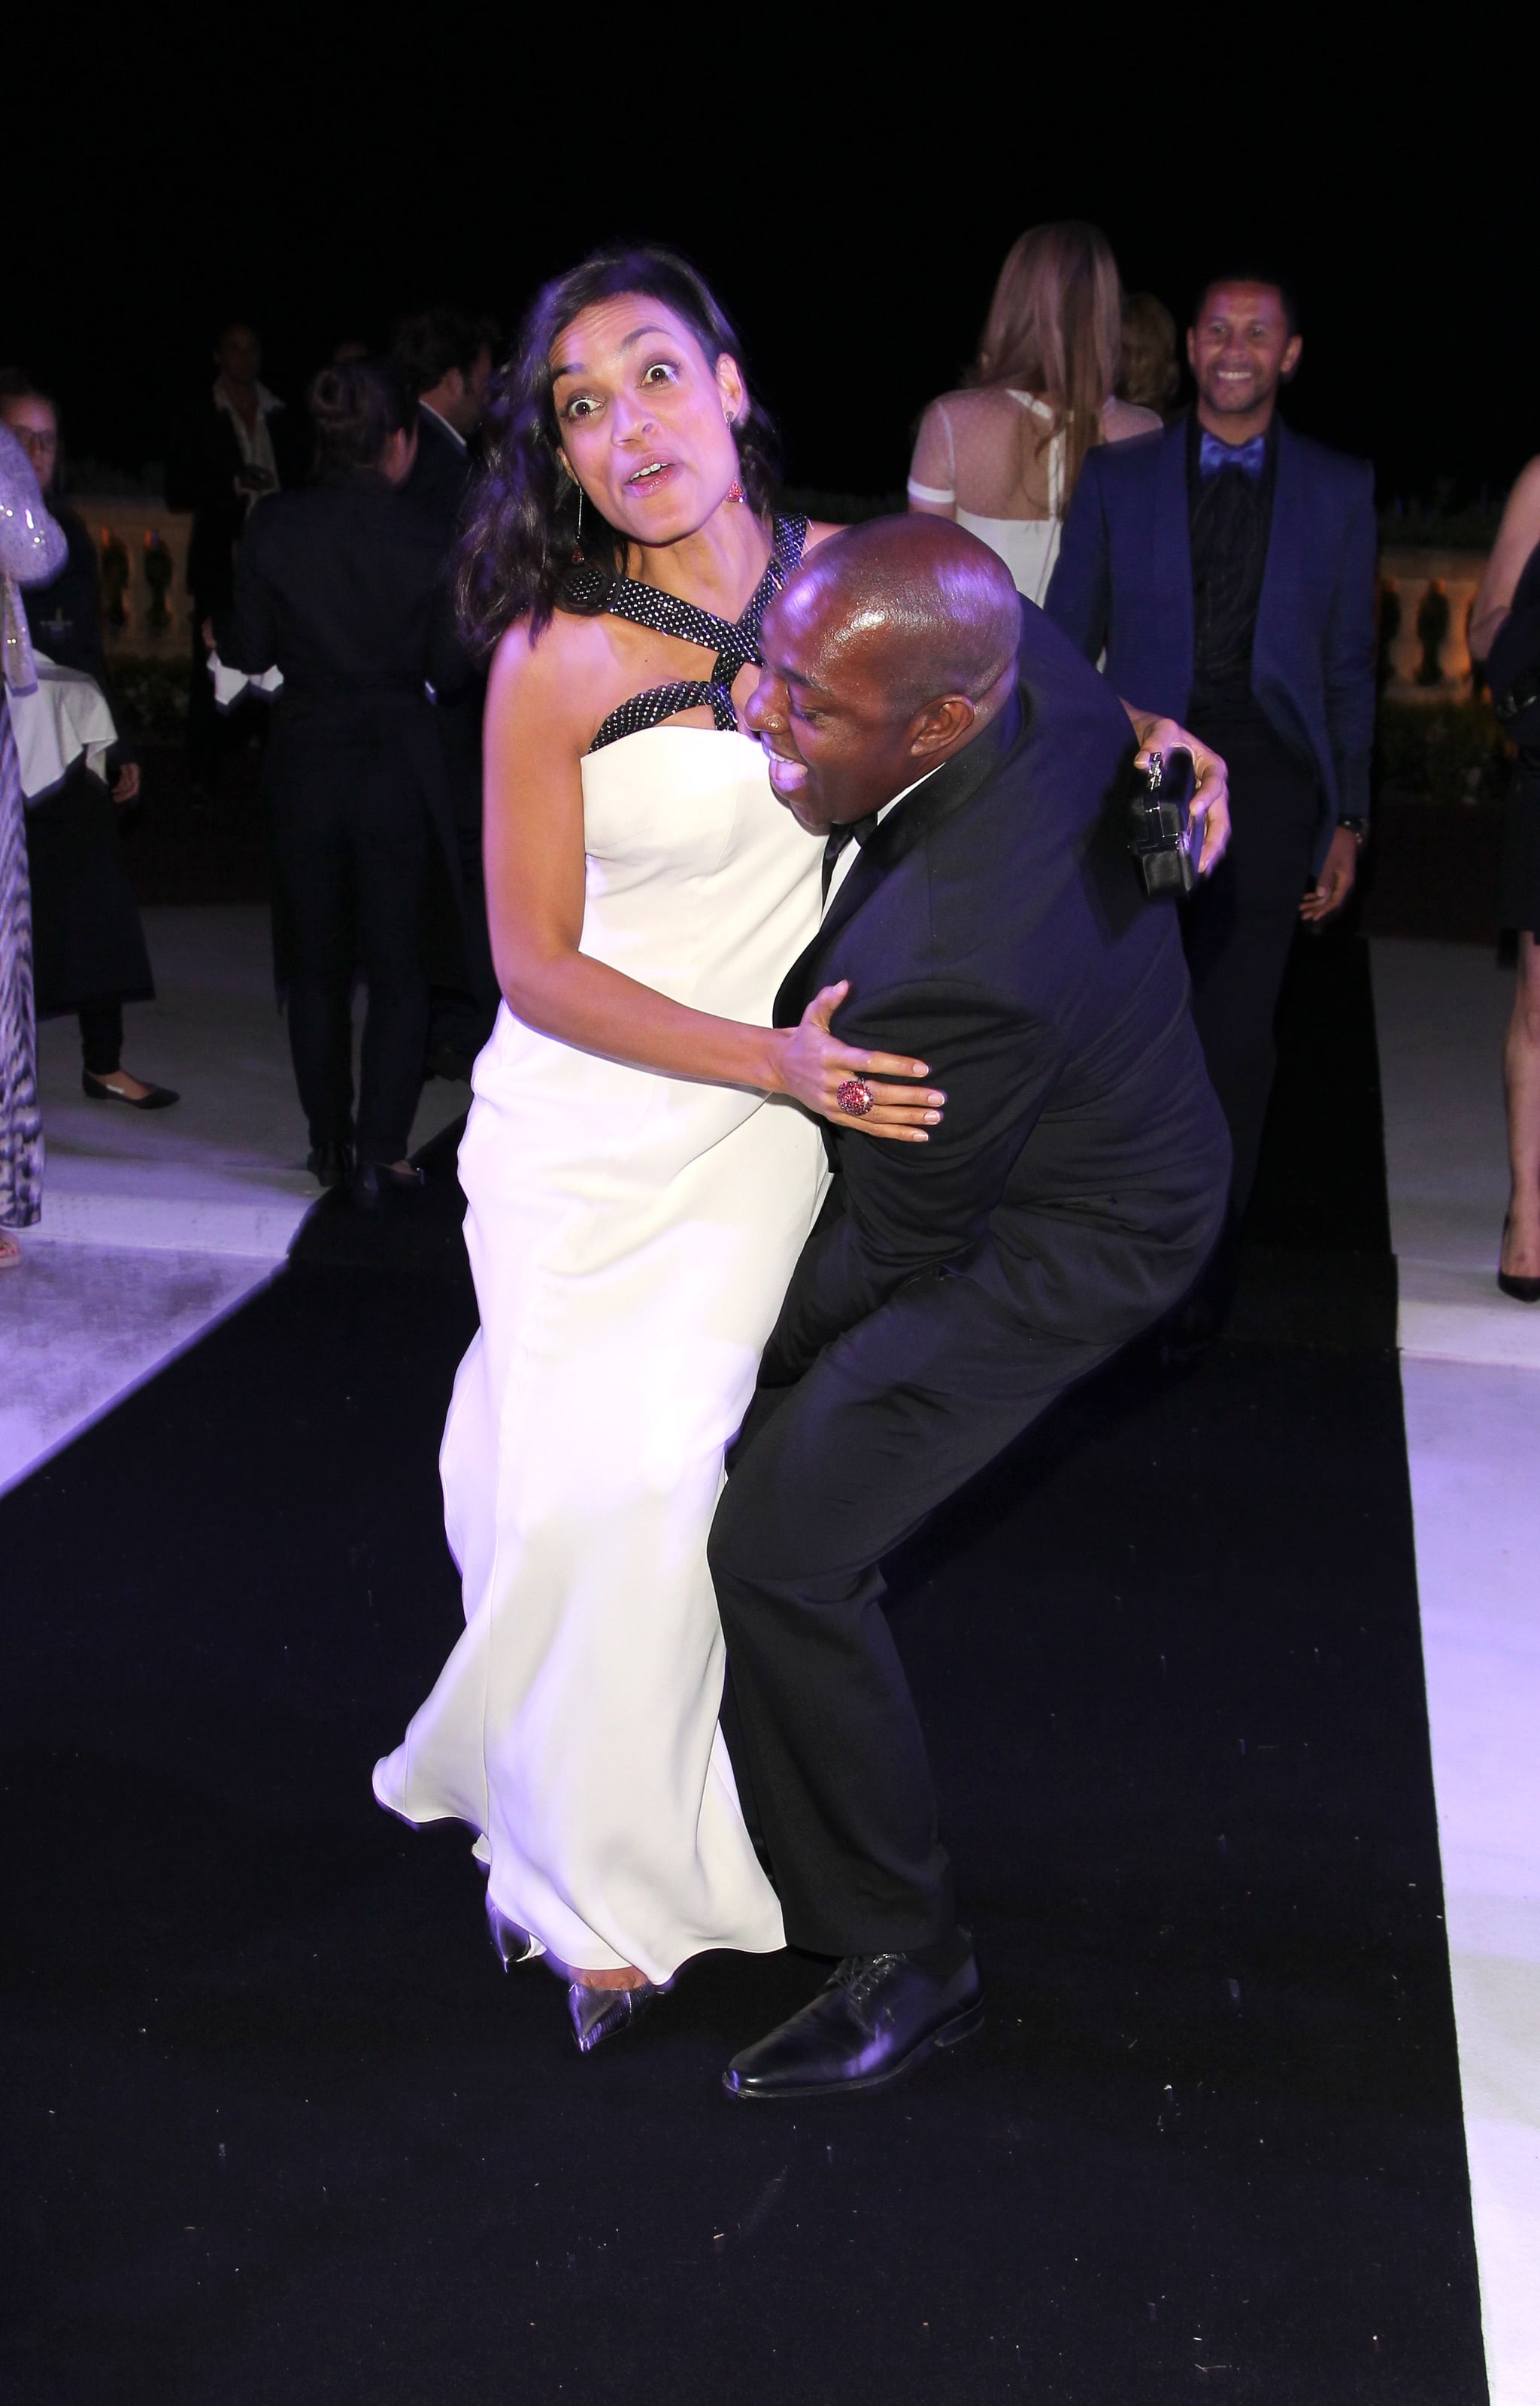 Rosario Dawson had a silly moment with a friend on the dance floor.